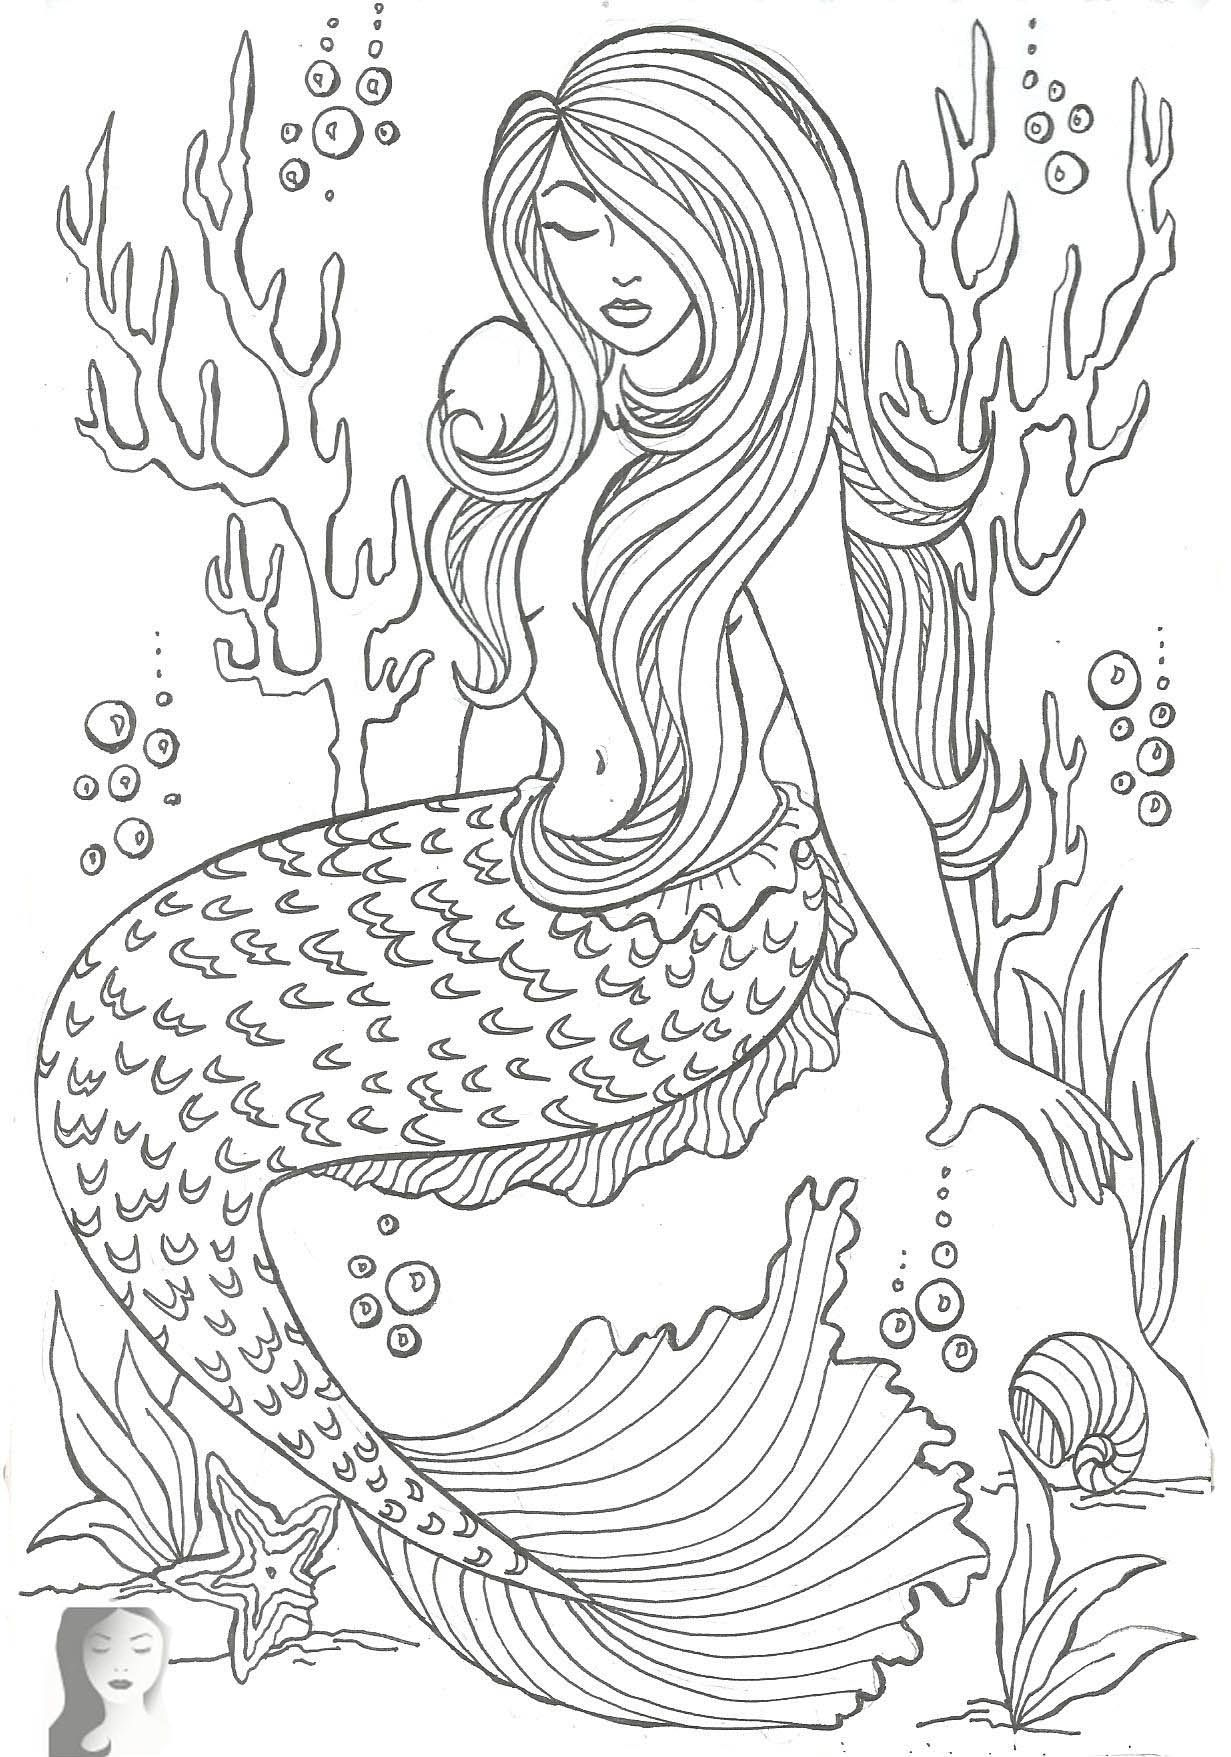 Mermaid Coloring Page Mermaid Coloring Pages Mermaid Coloring